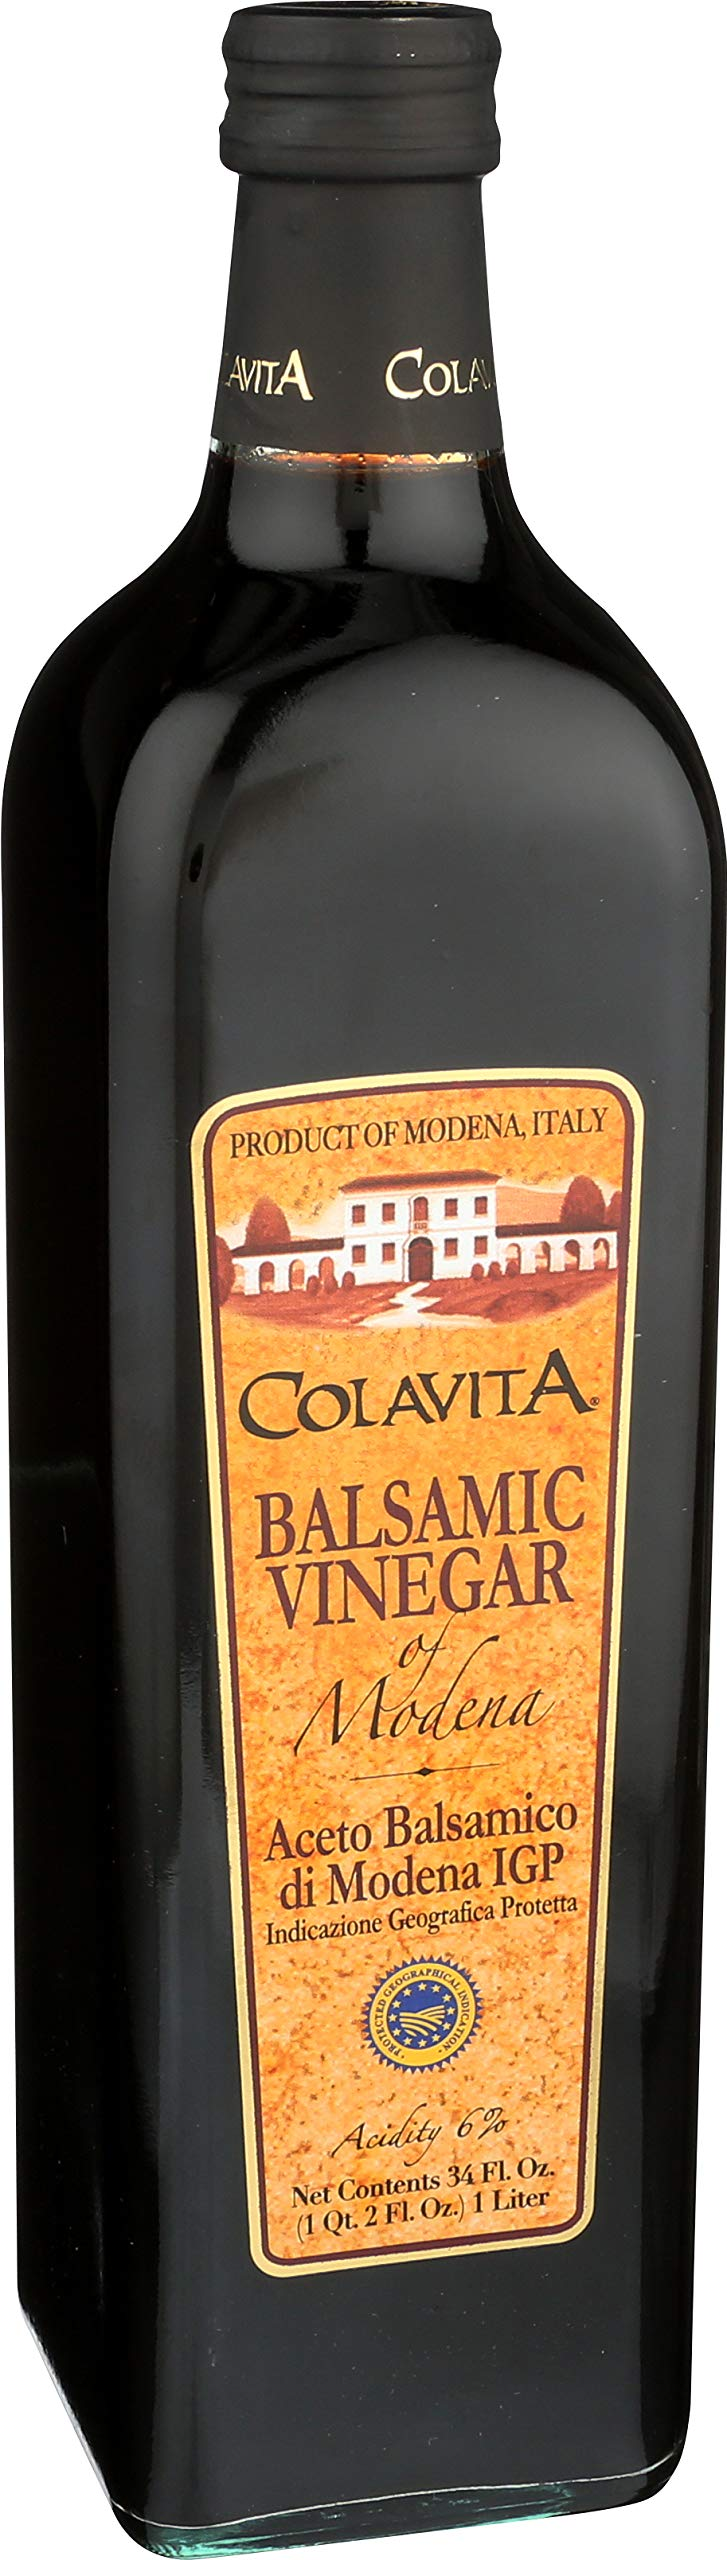 "Colavita Balsamic Vinegar of Modena, 34 Ounce (Pack of 2) 6 Contains Two Bottles of Colavita Balsamic Vinegar of Modena, 34 Ounce Each This special ""12 Star"" balsamic vinegar contains more than double the amount of grape must required by Italian Law. Product of Modena, Italy"